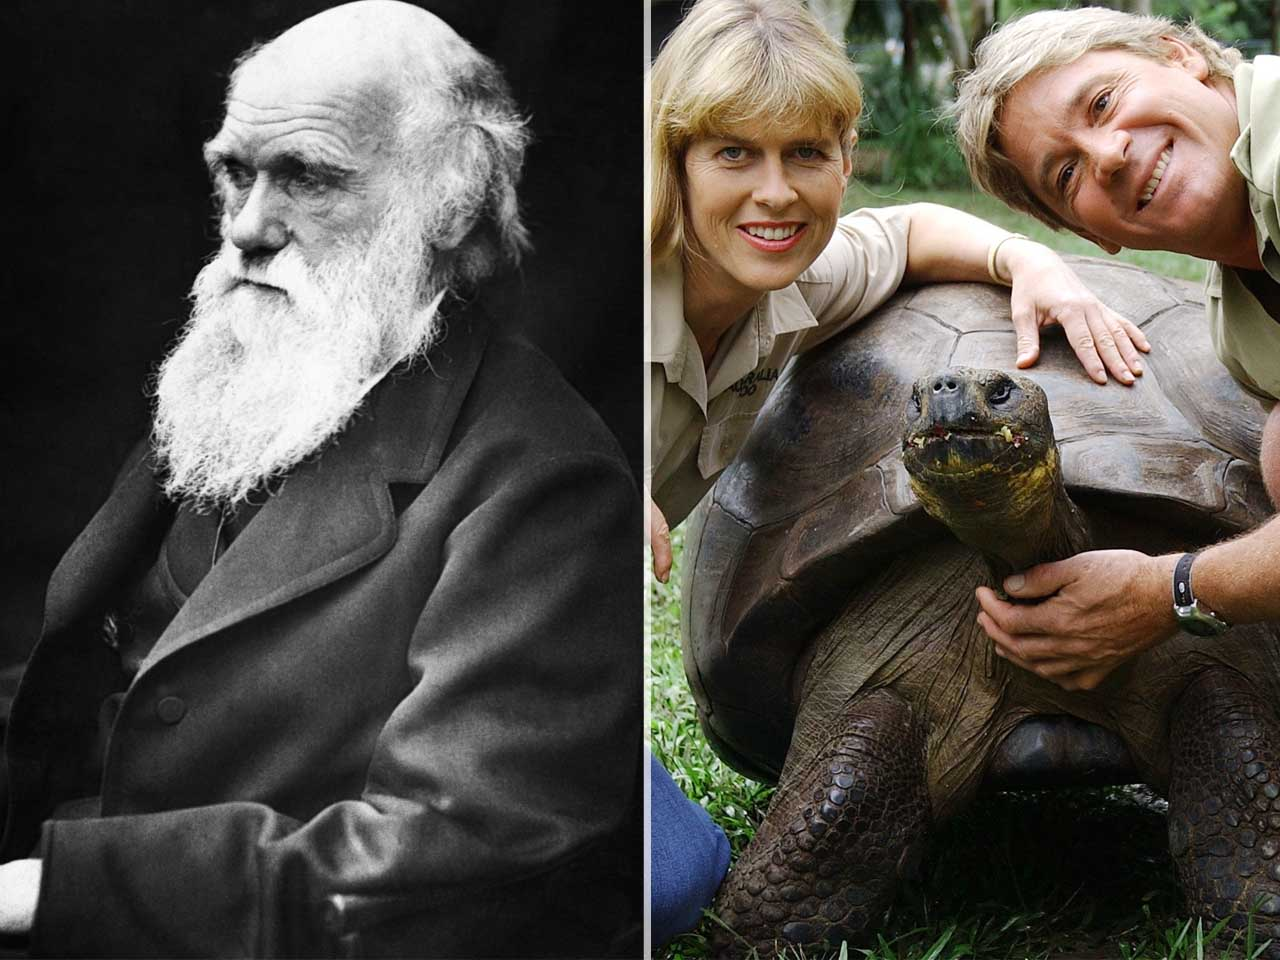 Harriet The Tortoise, Who Died In 2006, Had Seen Charles Darwin In Person